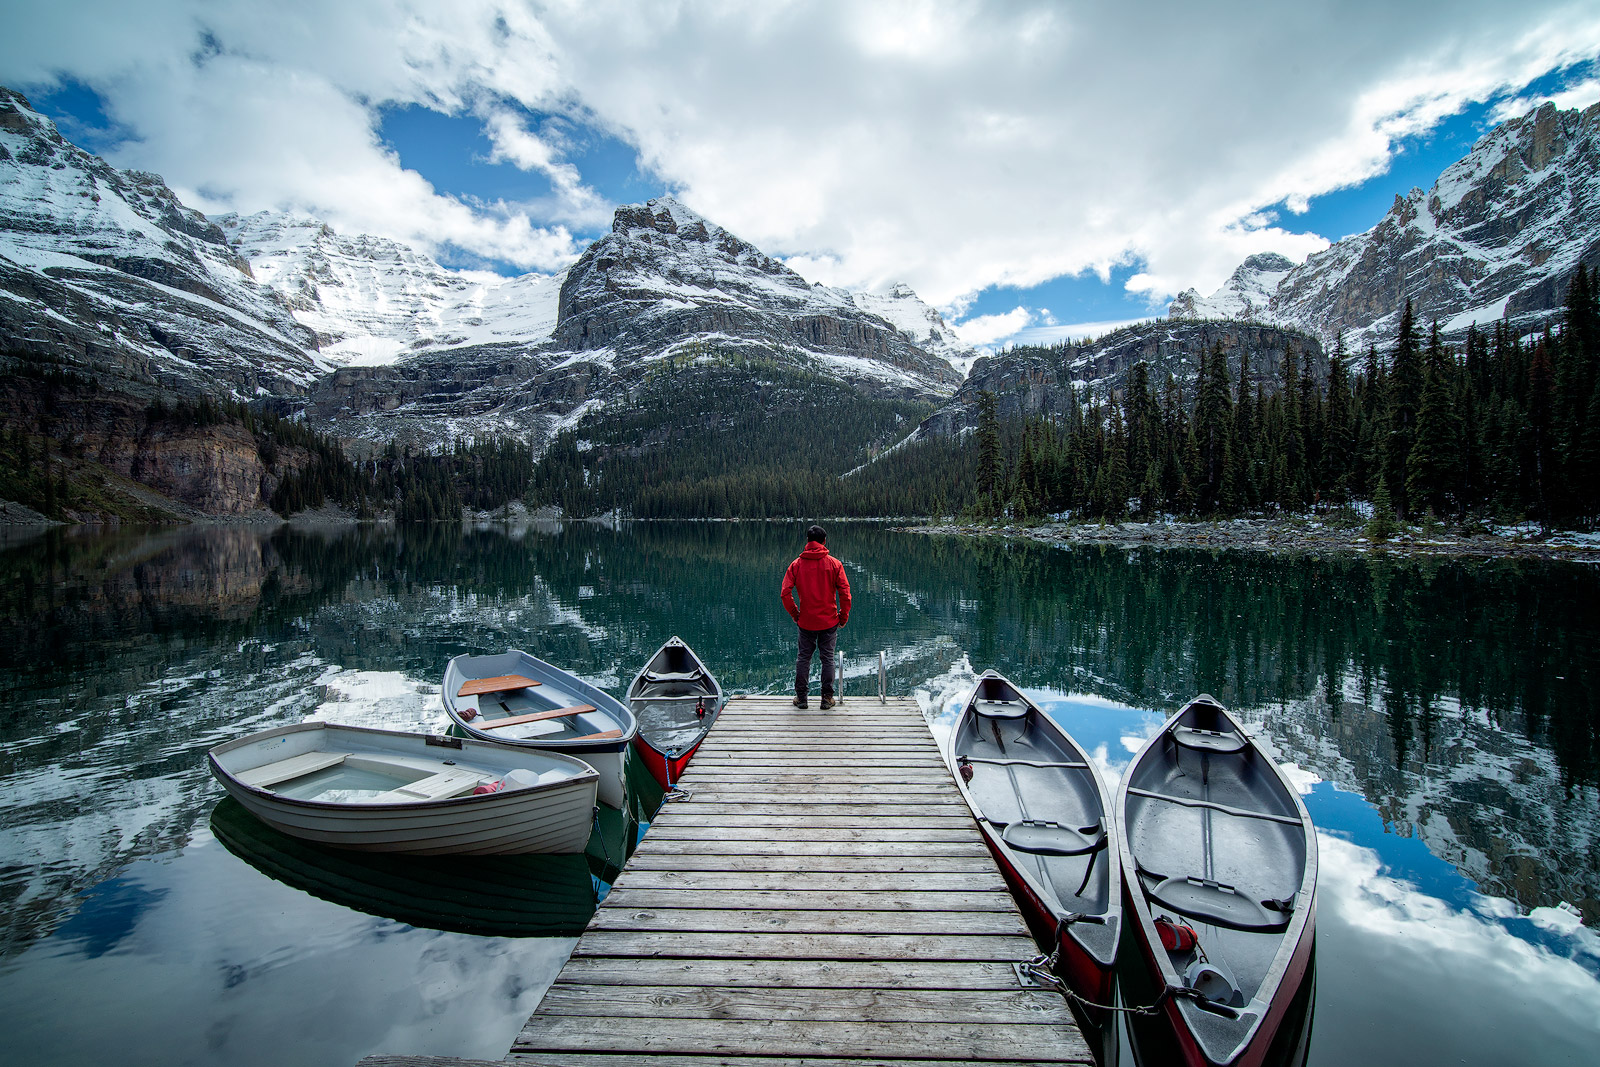 Canada, Glacier, Alberta, Banff, Moraine Lake, Canadian Rockies, Lake Louise, Jasper National Park, Rocky Mountains, Lake Minnewanka...